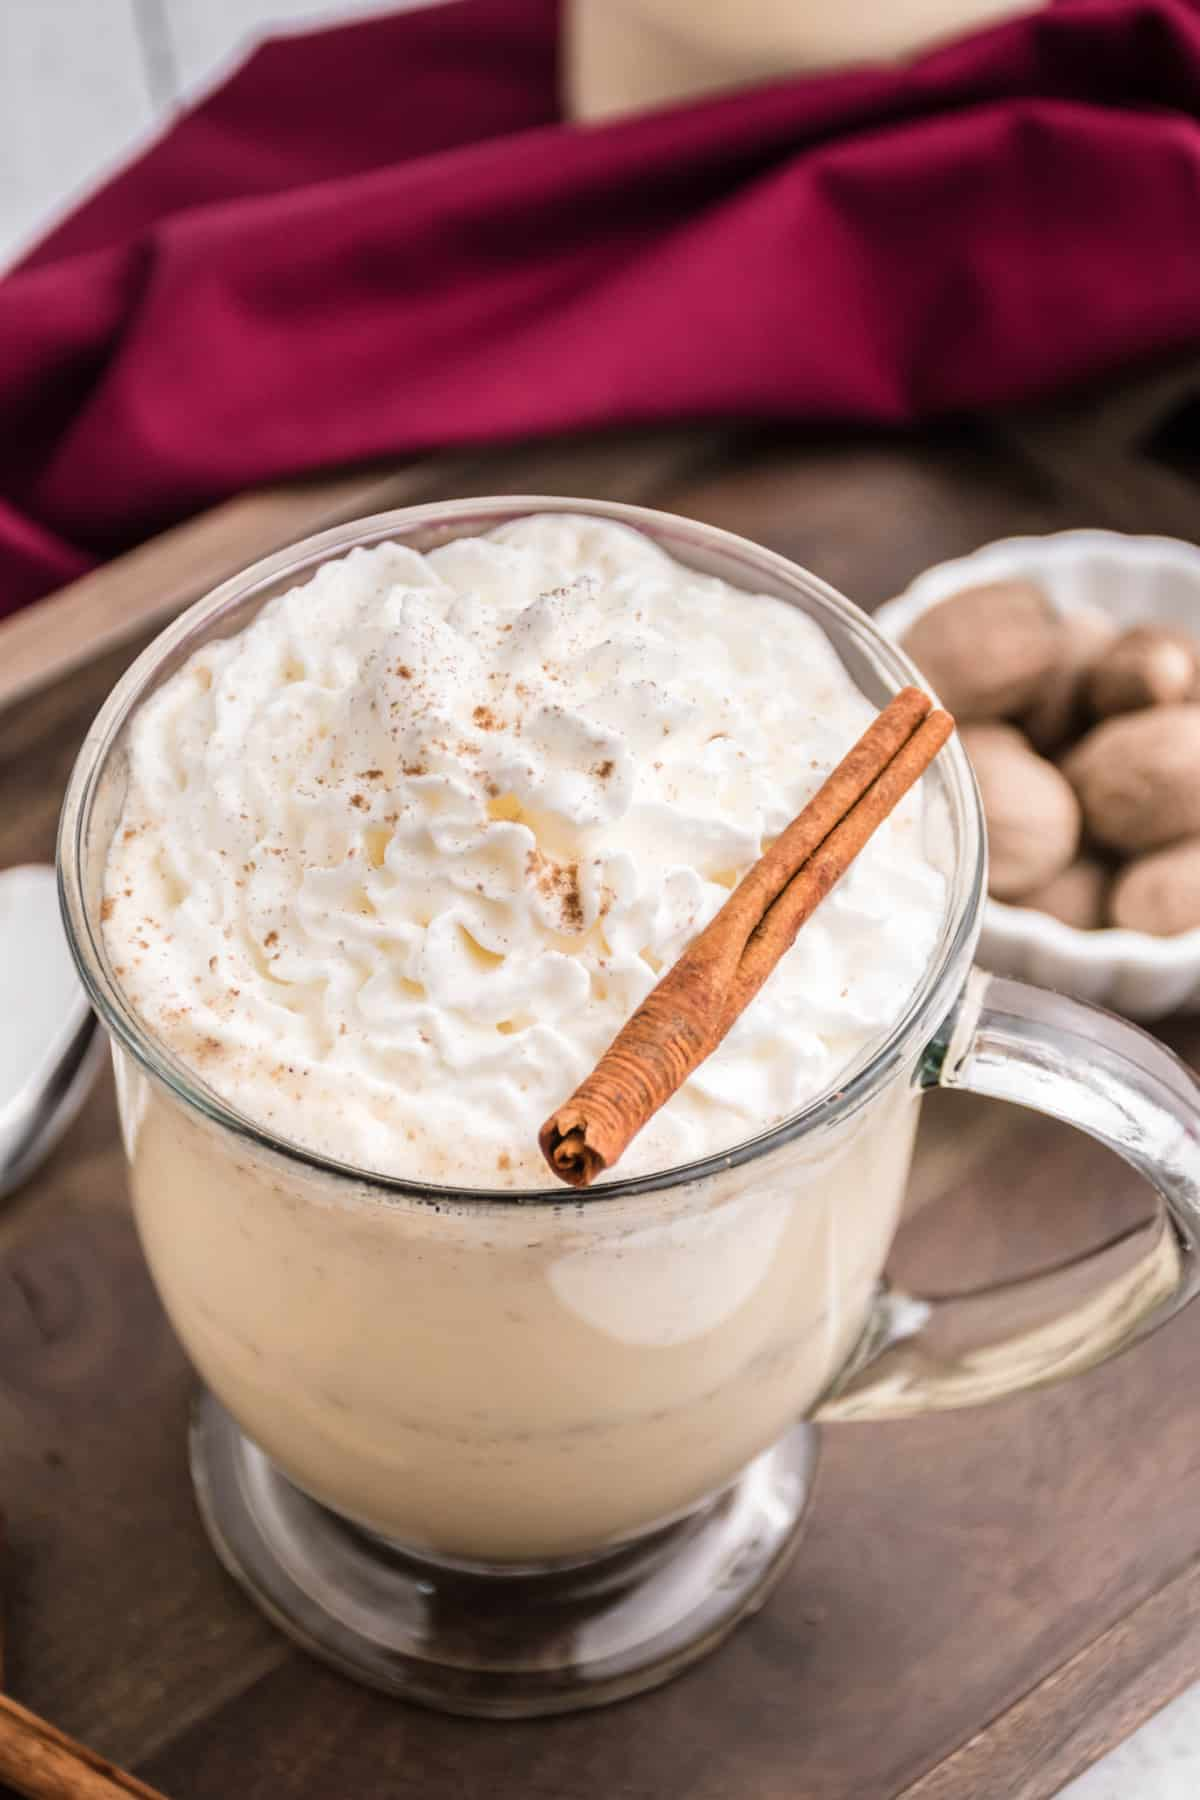 Clear glass mug with eggnog, whipped cream, and cinnamon stick.